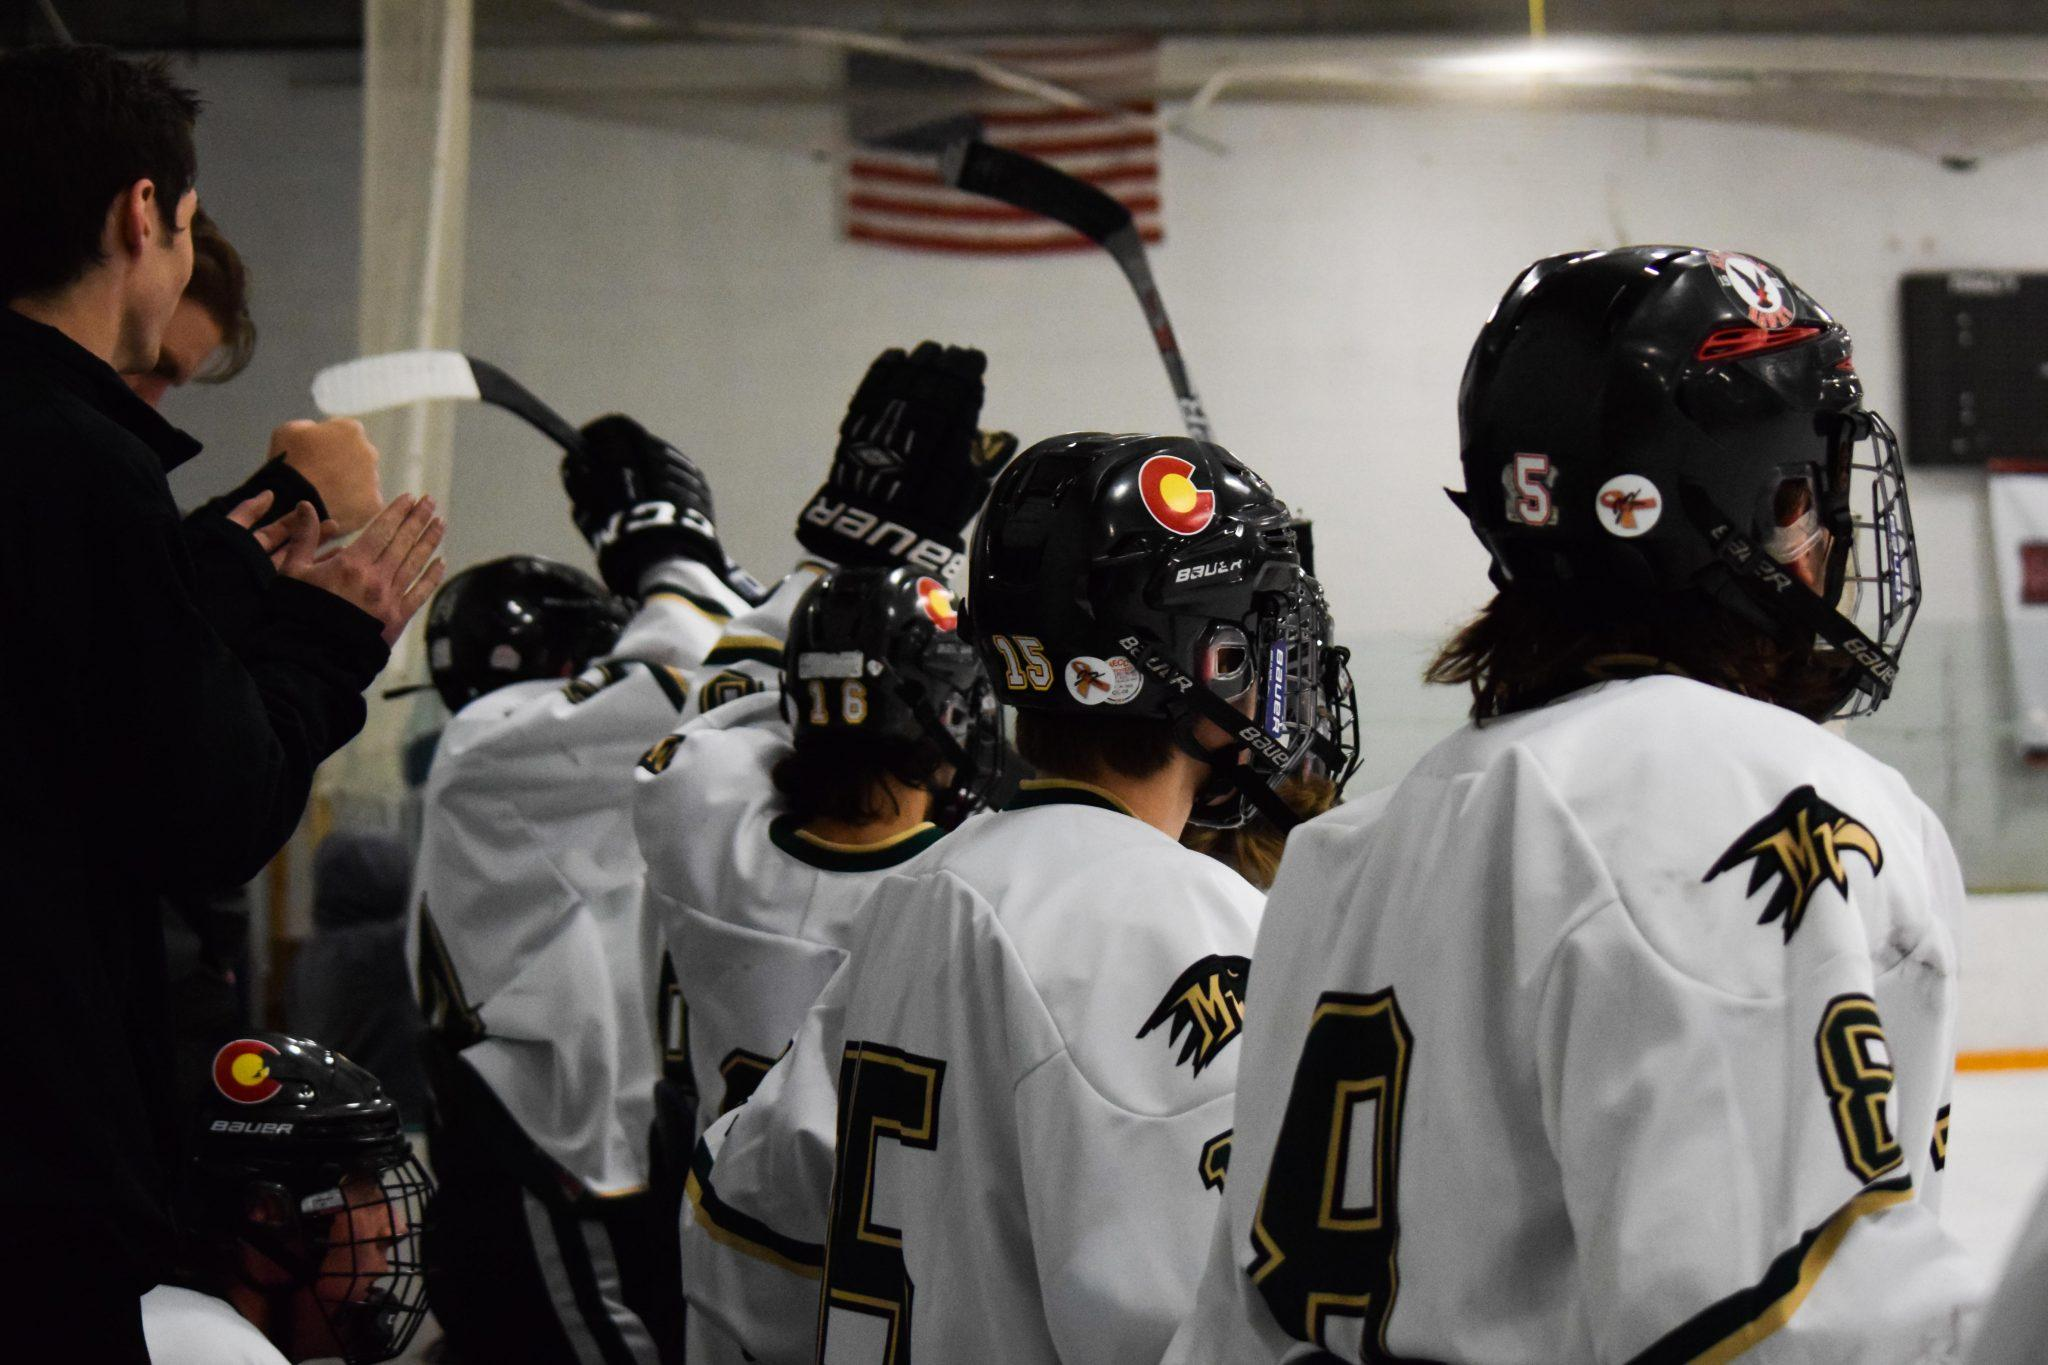 PHOTOS: Varsity Ice Hockey vs. Dakota Ridge